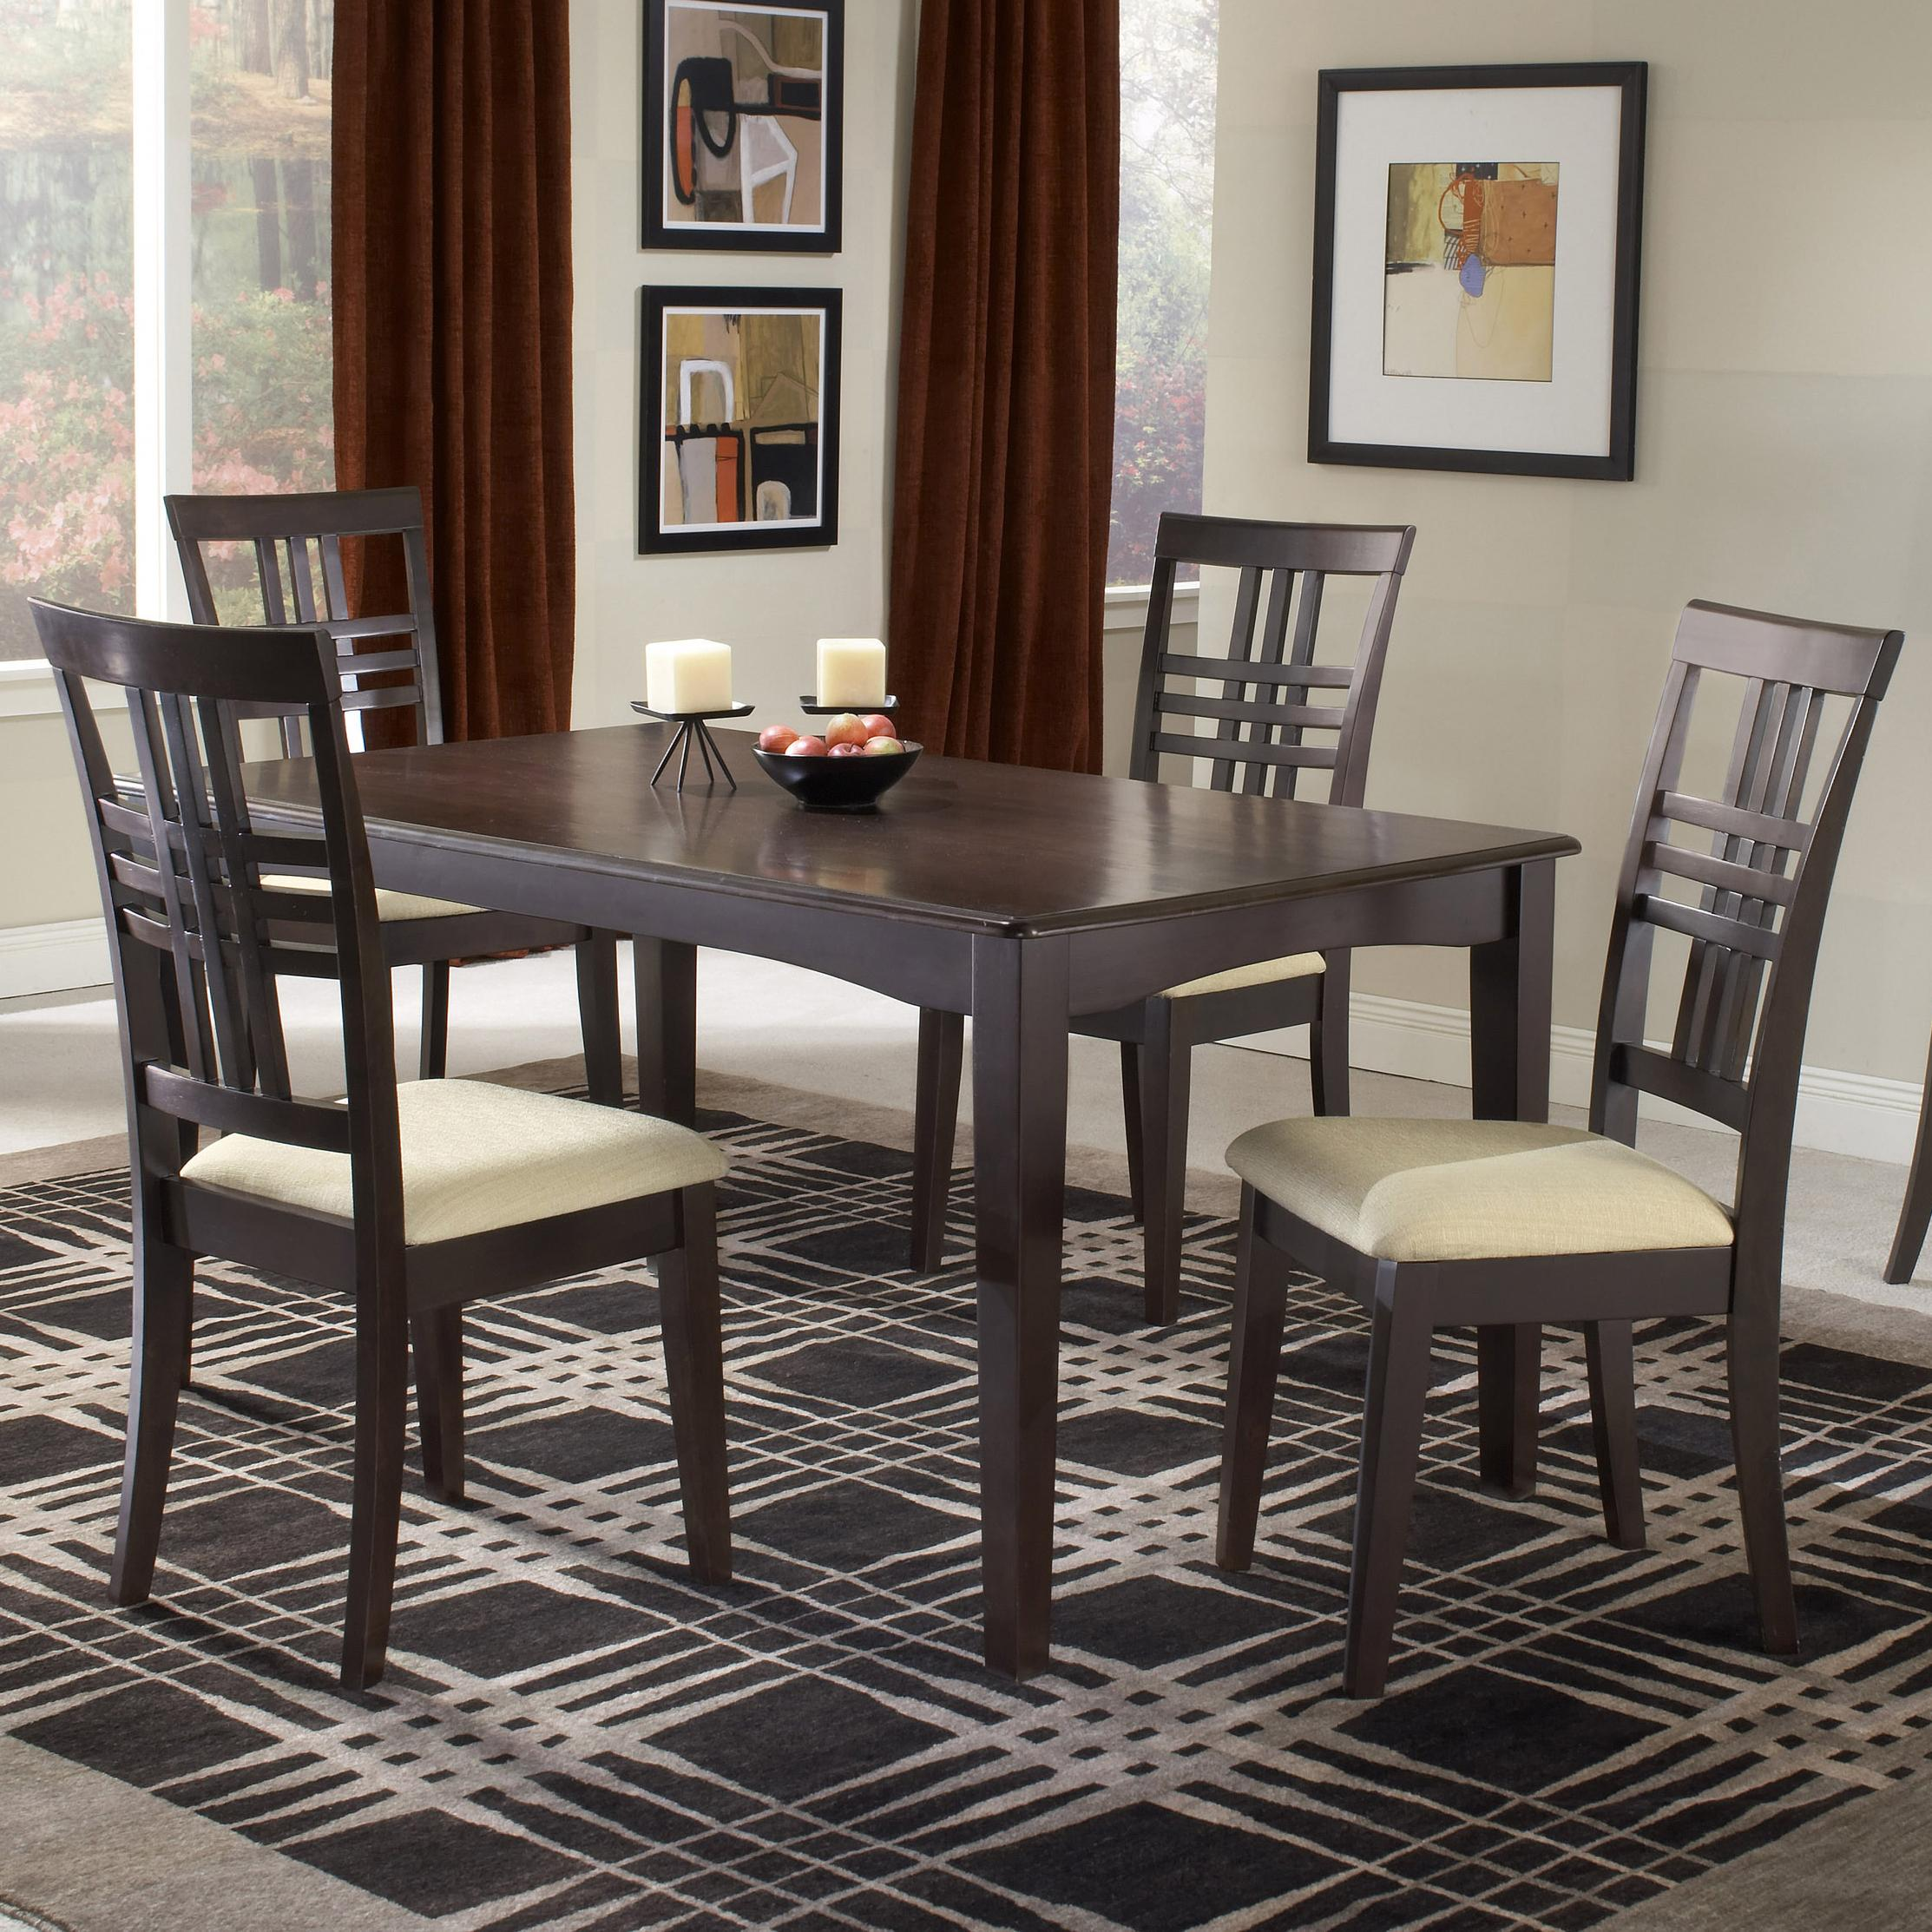 Tiburon upholstered side dining chair morris home dining side chair Morris home furniture hours